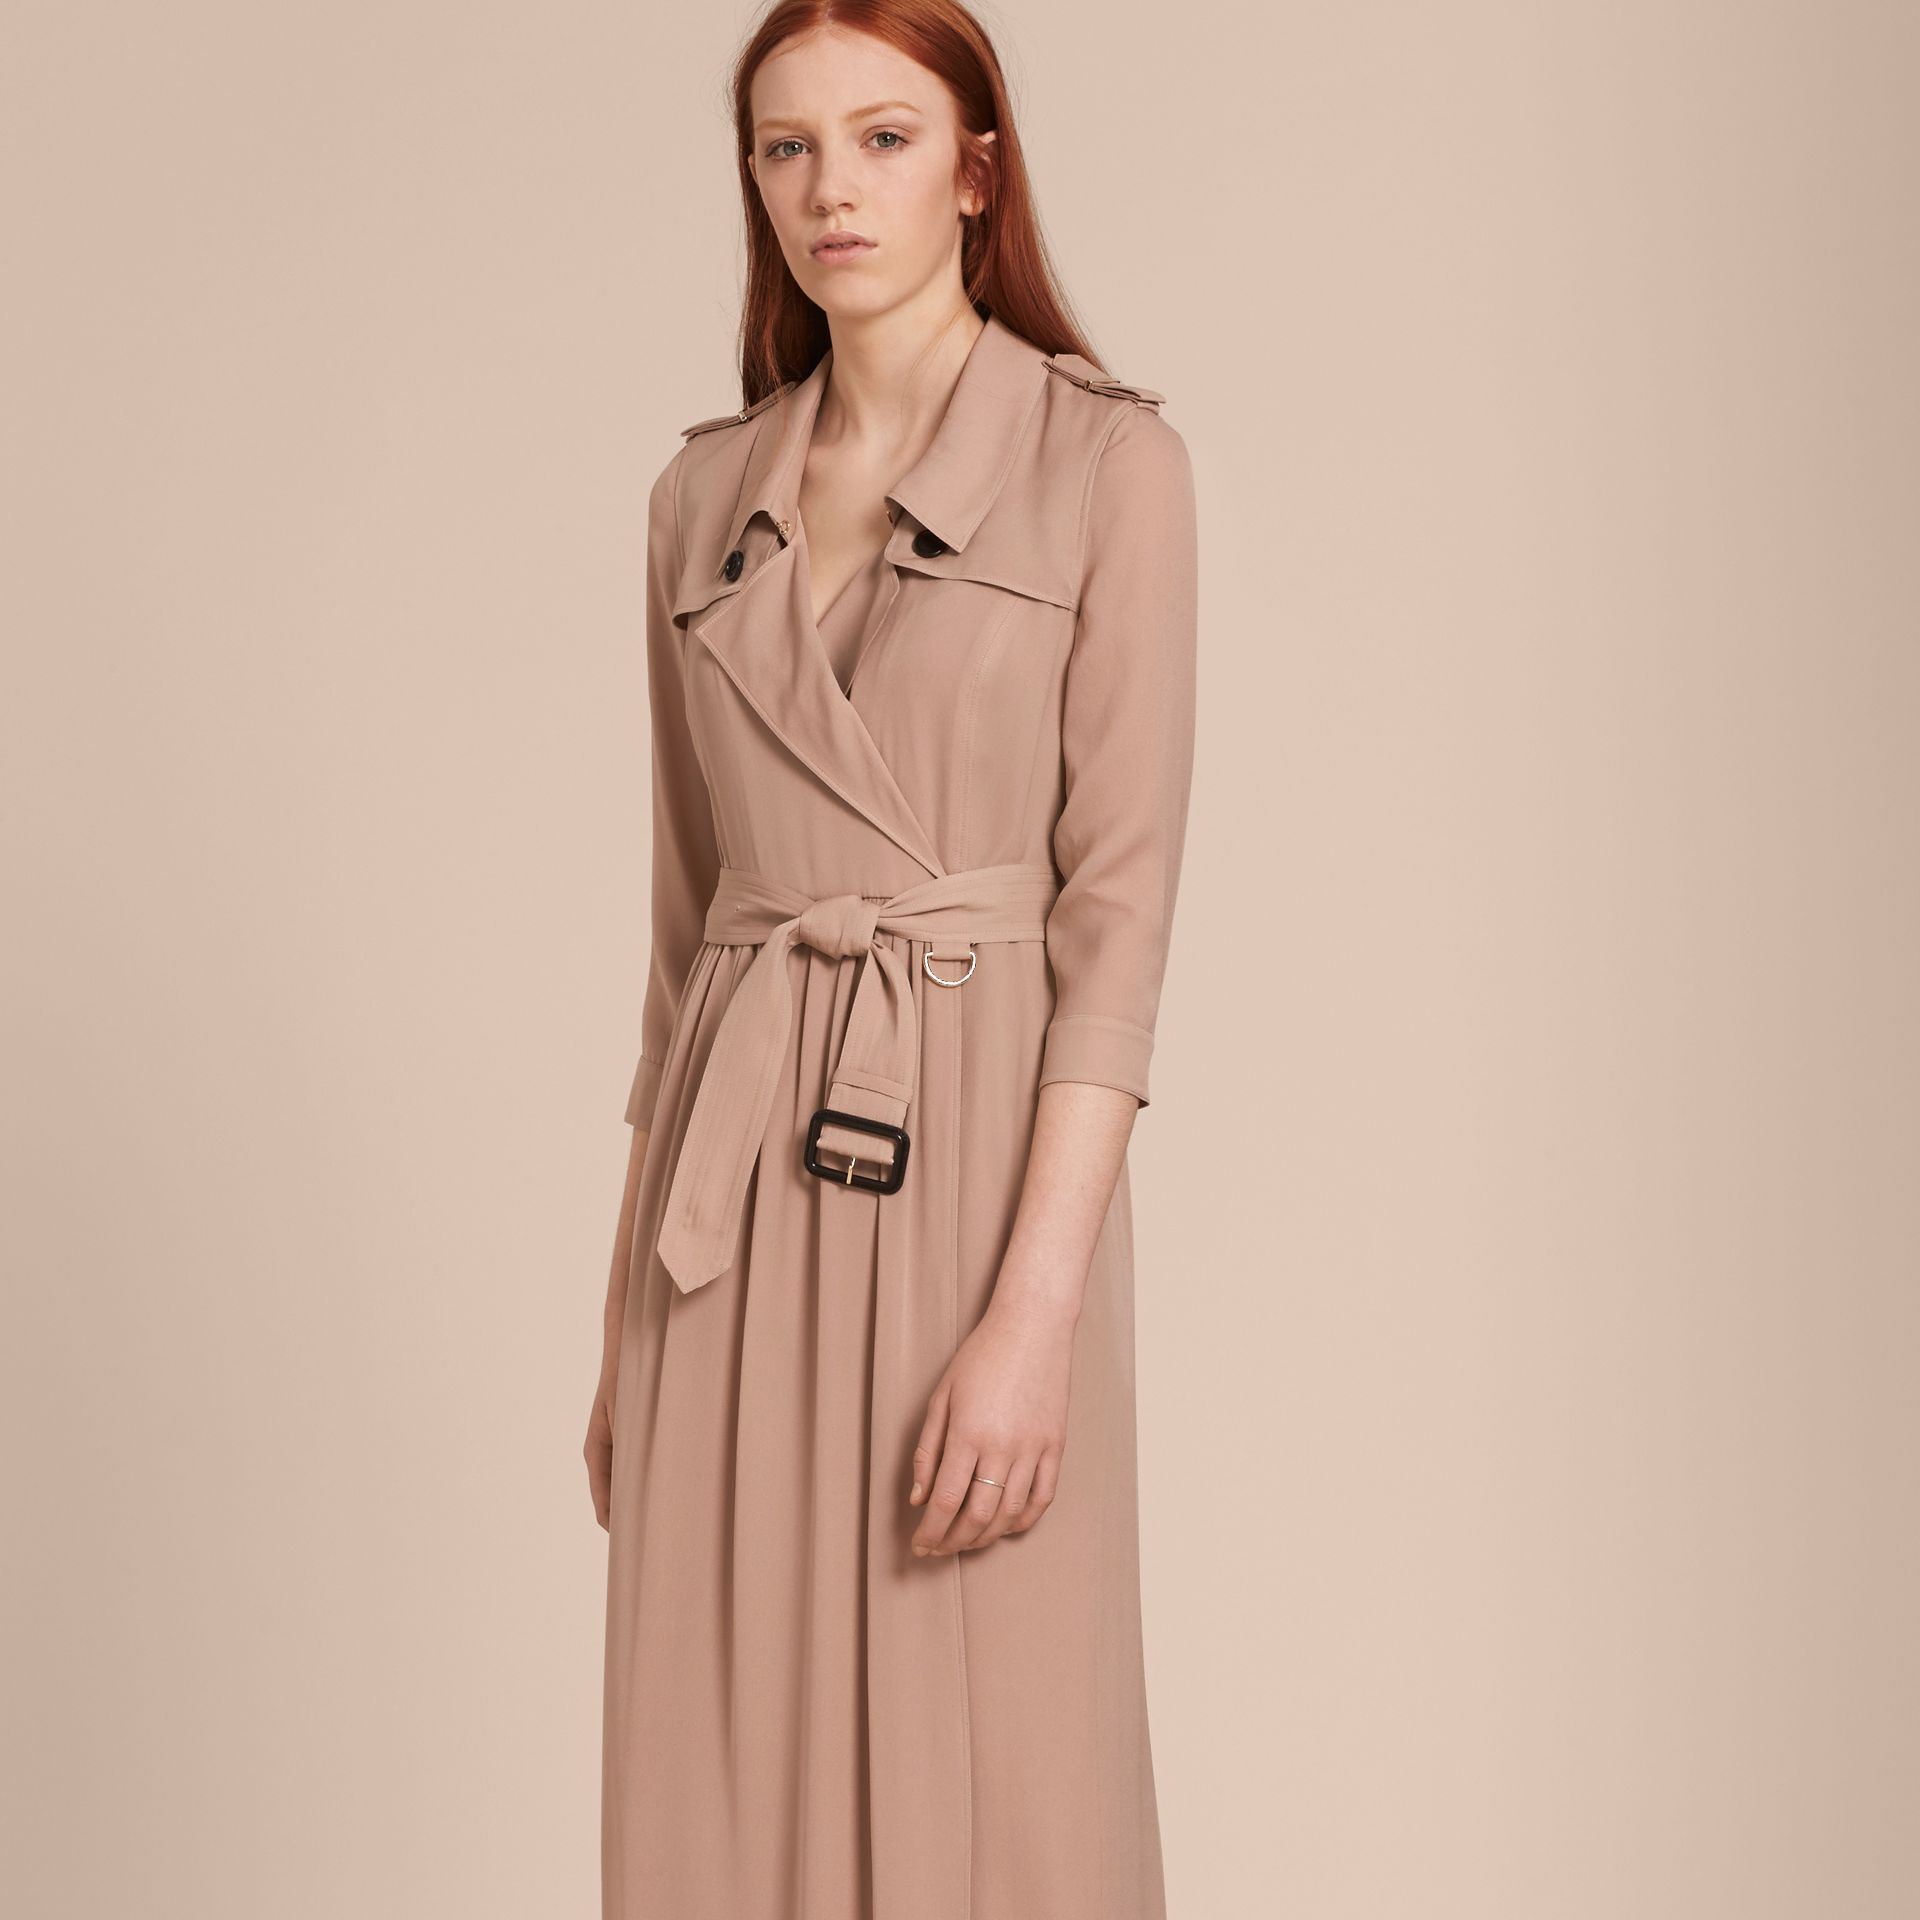 Silk Trench Dress in Nude - Women | Burberry - gallery image 7